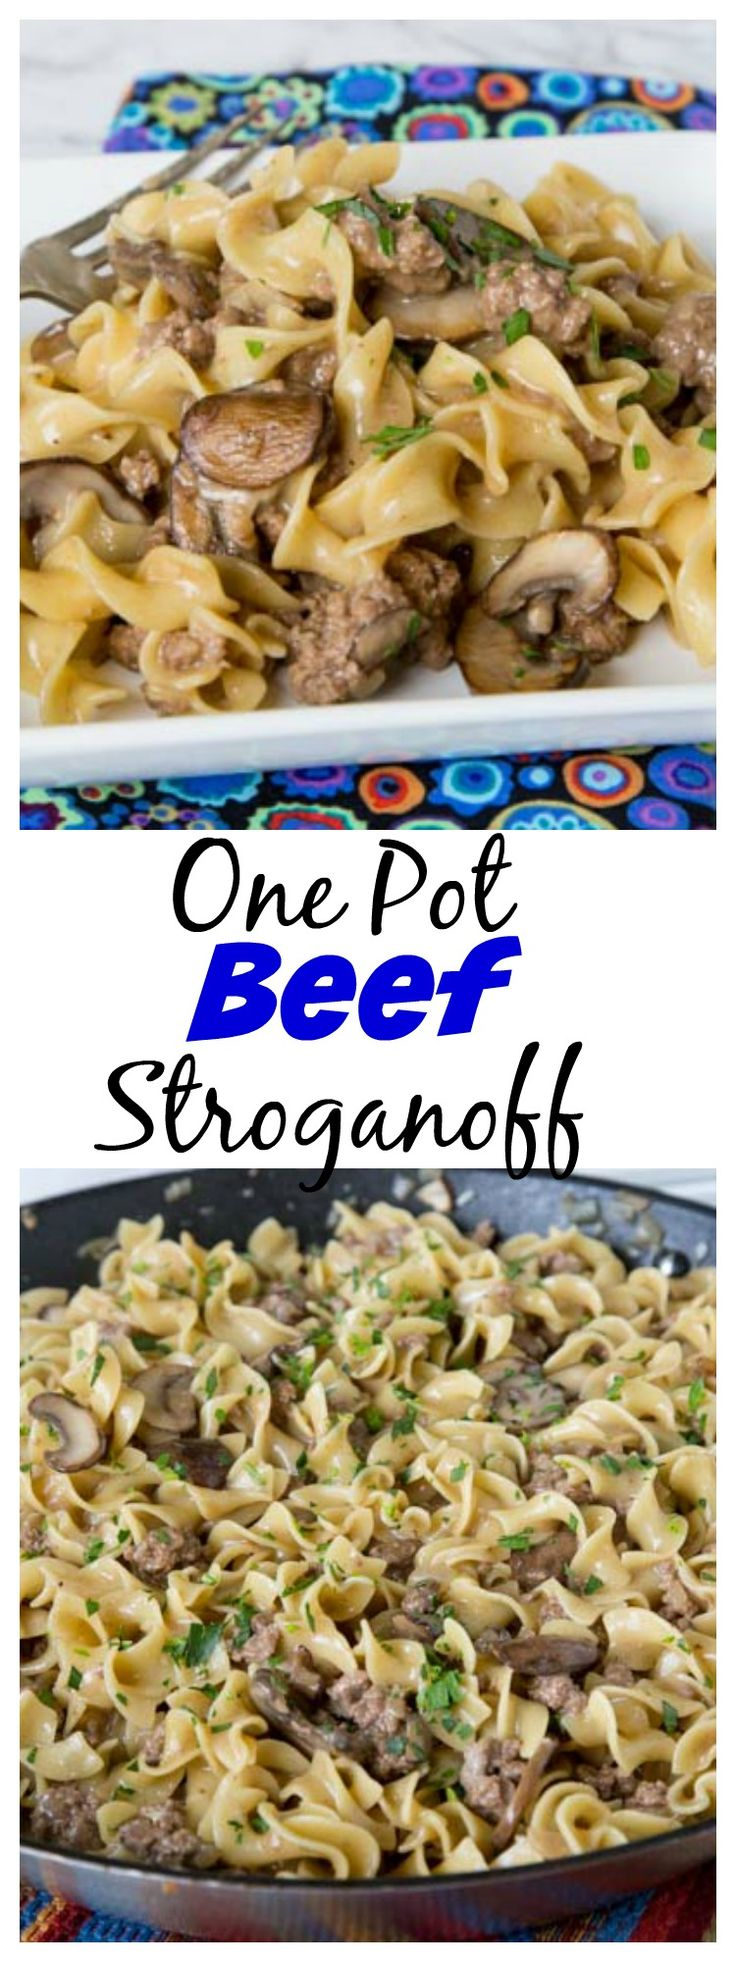 Busy weeknights call for quick and easy dinners. This one-pot beef stroganoff is a quick and easy version of the classic, so you can have it on your busiest night. Plus it's more budget friendly than the original because you use ground beef to make it come together. #ad